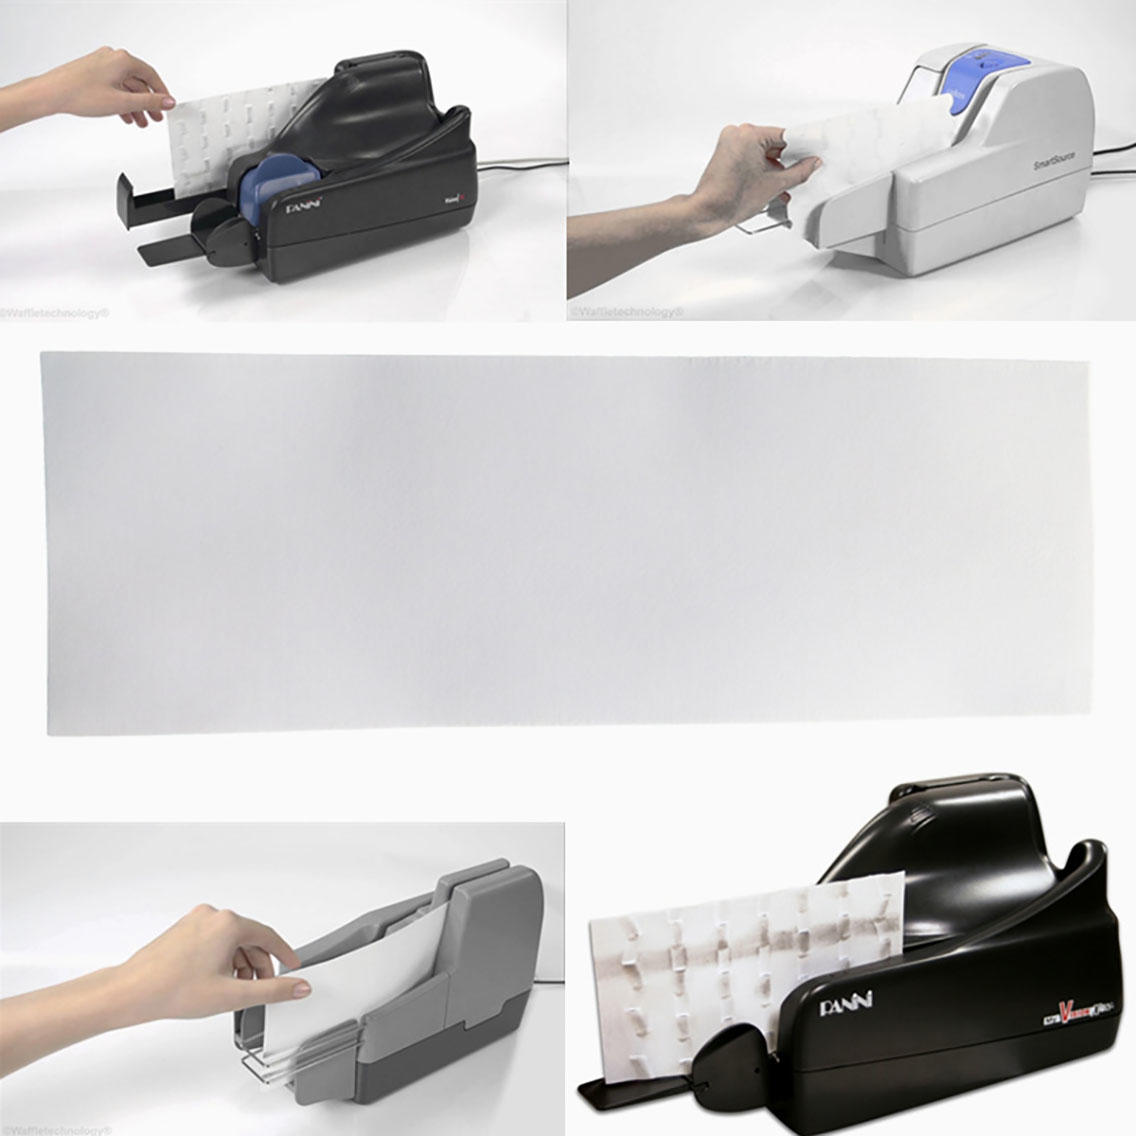 Cleanmo non woven fabric check reader cleaning card manufacturer for Digital Check TellerScan